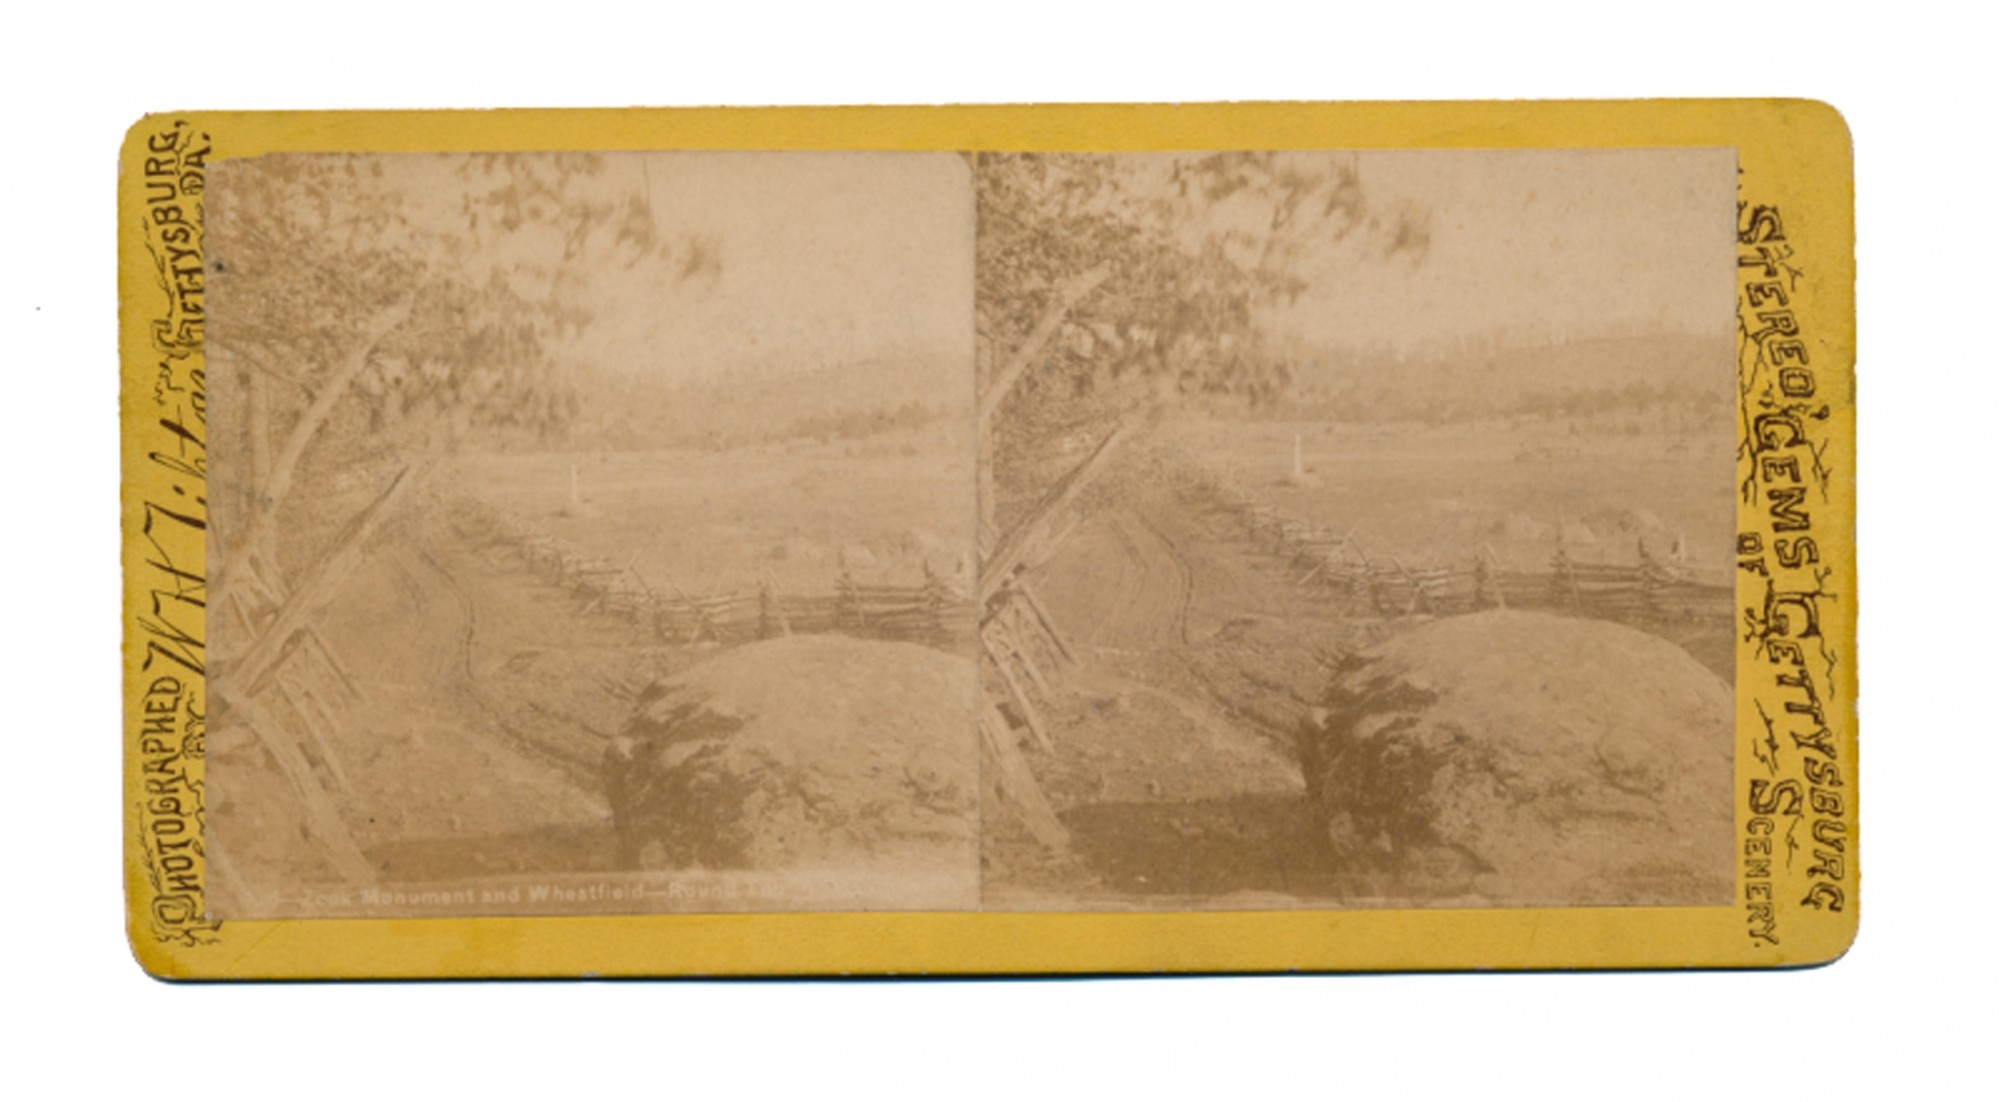 TIPTON STEREOVIEW OF THE WHEATFIELD & GENERAL ZOOK MARKER